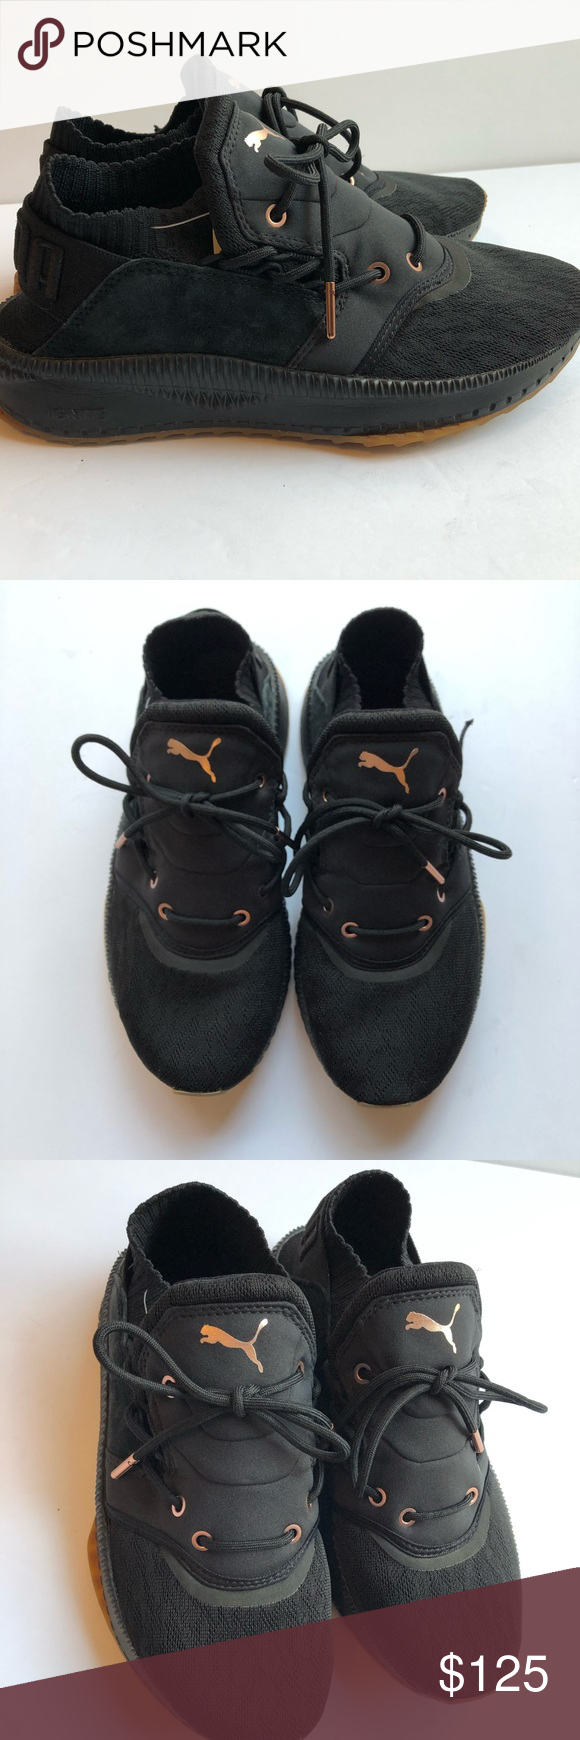 4c9ba1a7b73 puma tsugi shinsei Black rose gold shoes Size 9 nwob One small flaw  pictured. The